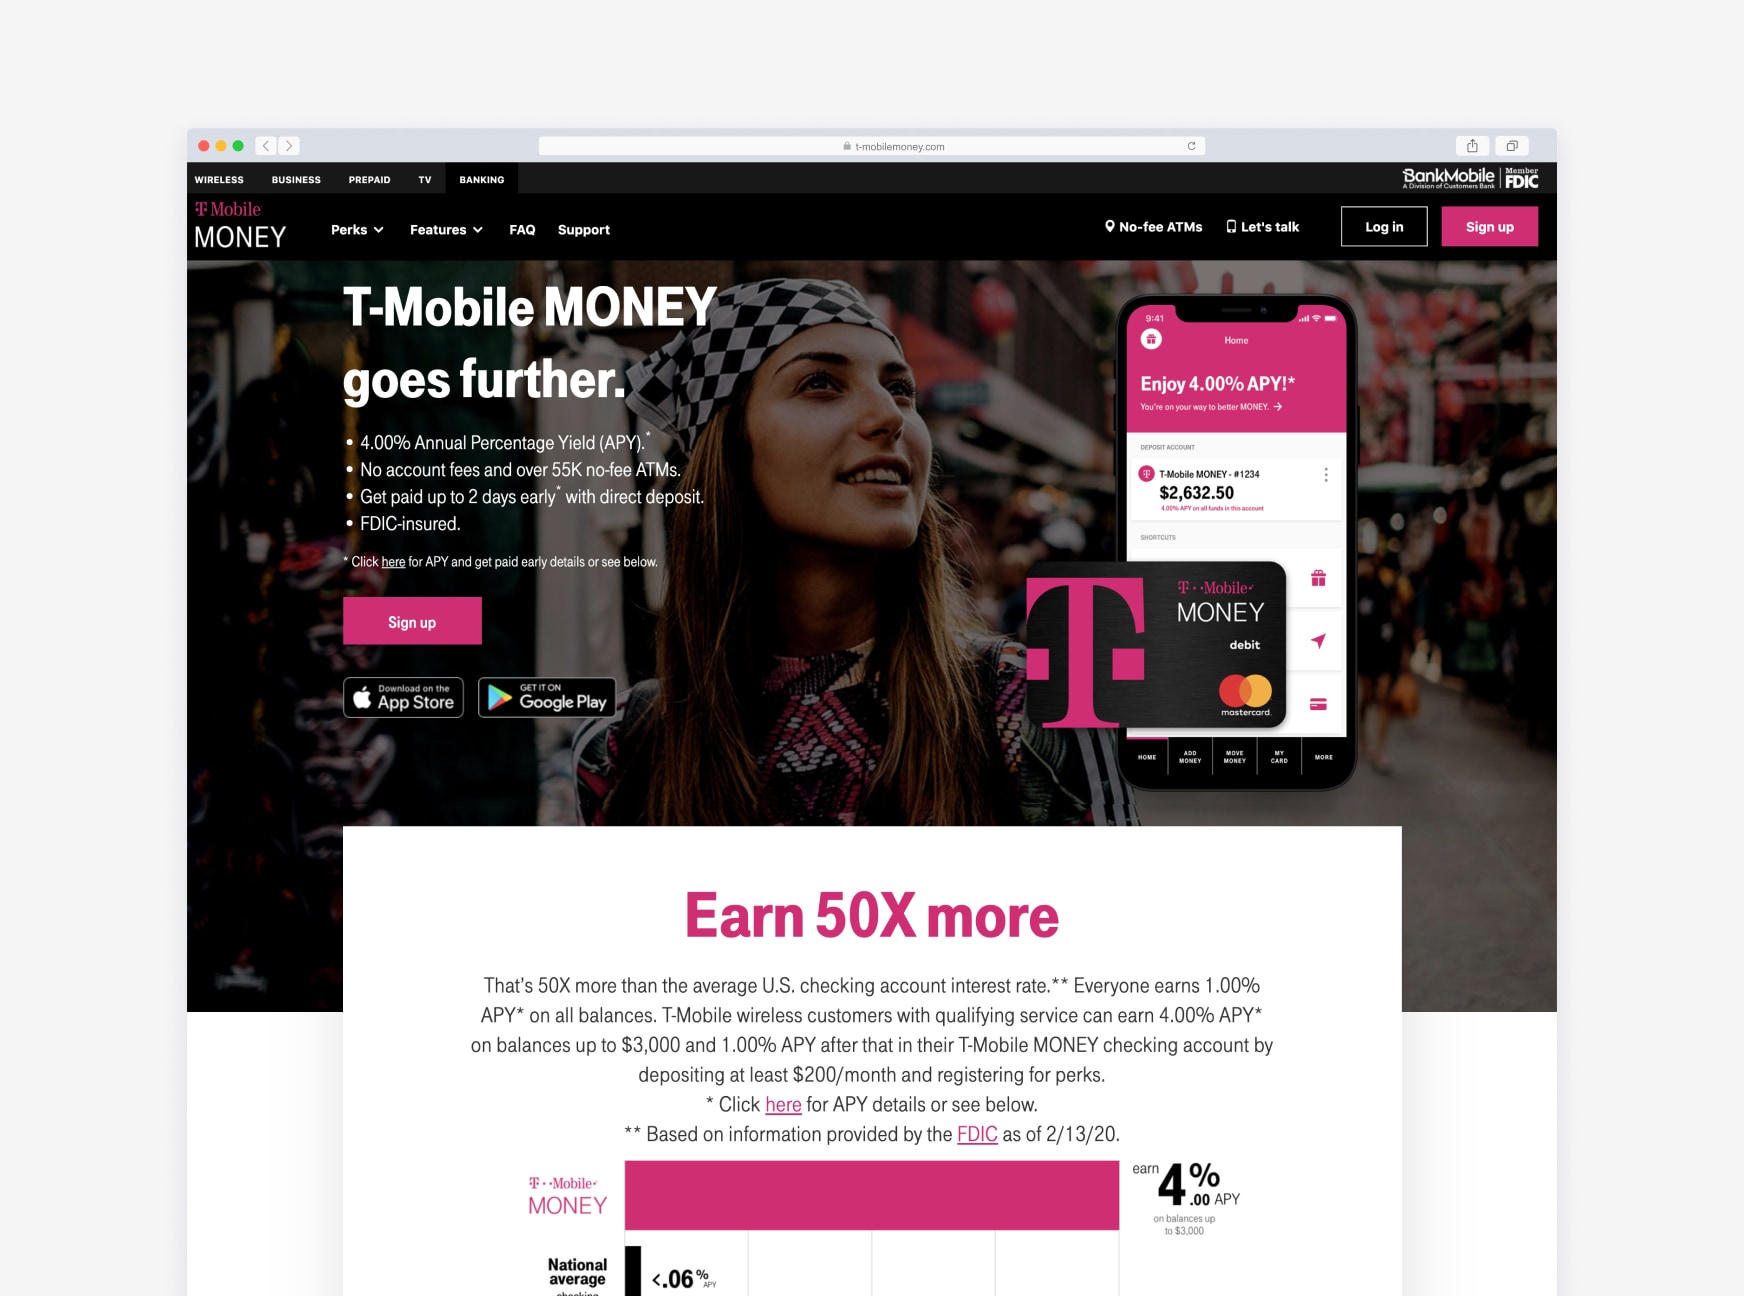 Screenshot of the T-Mobile Money desktop app